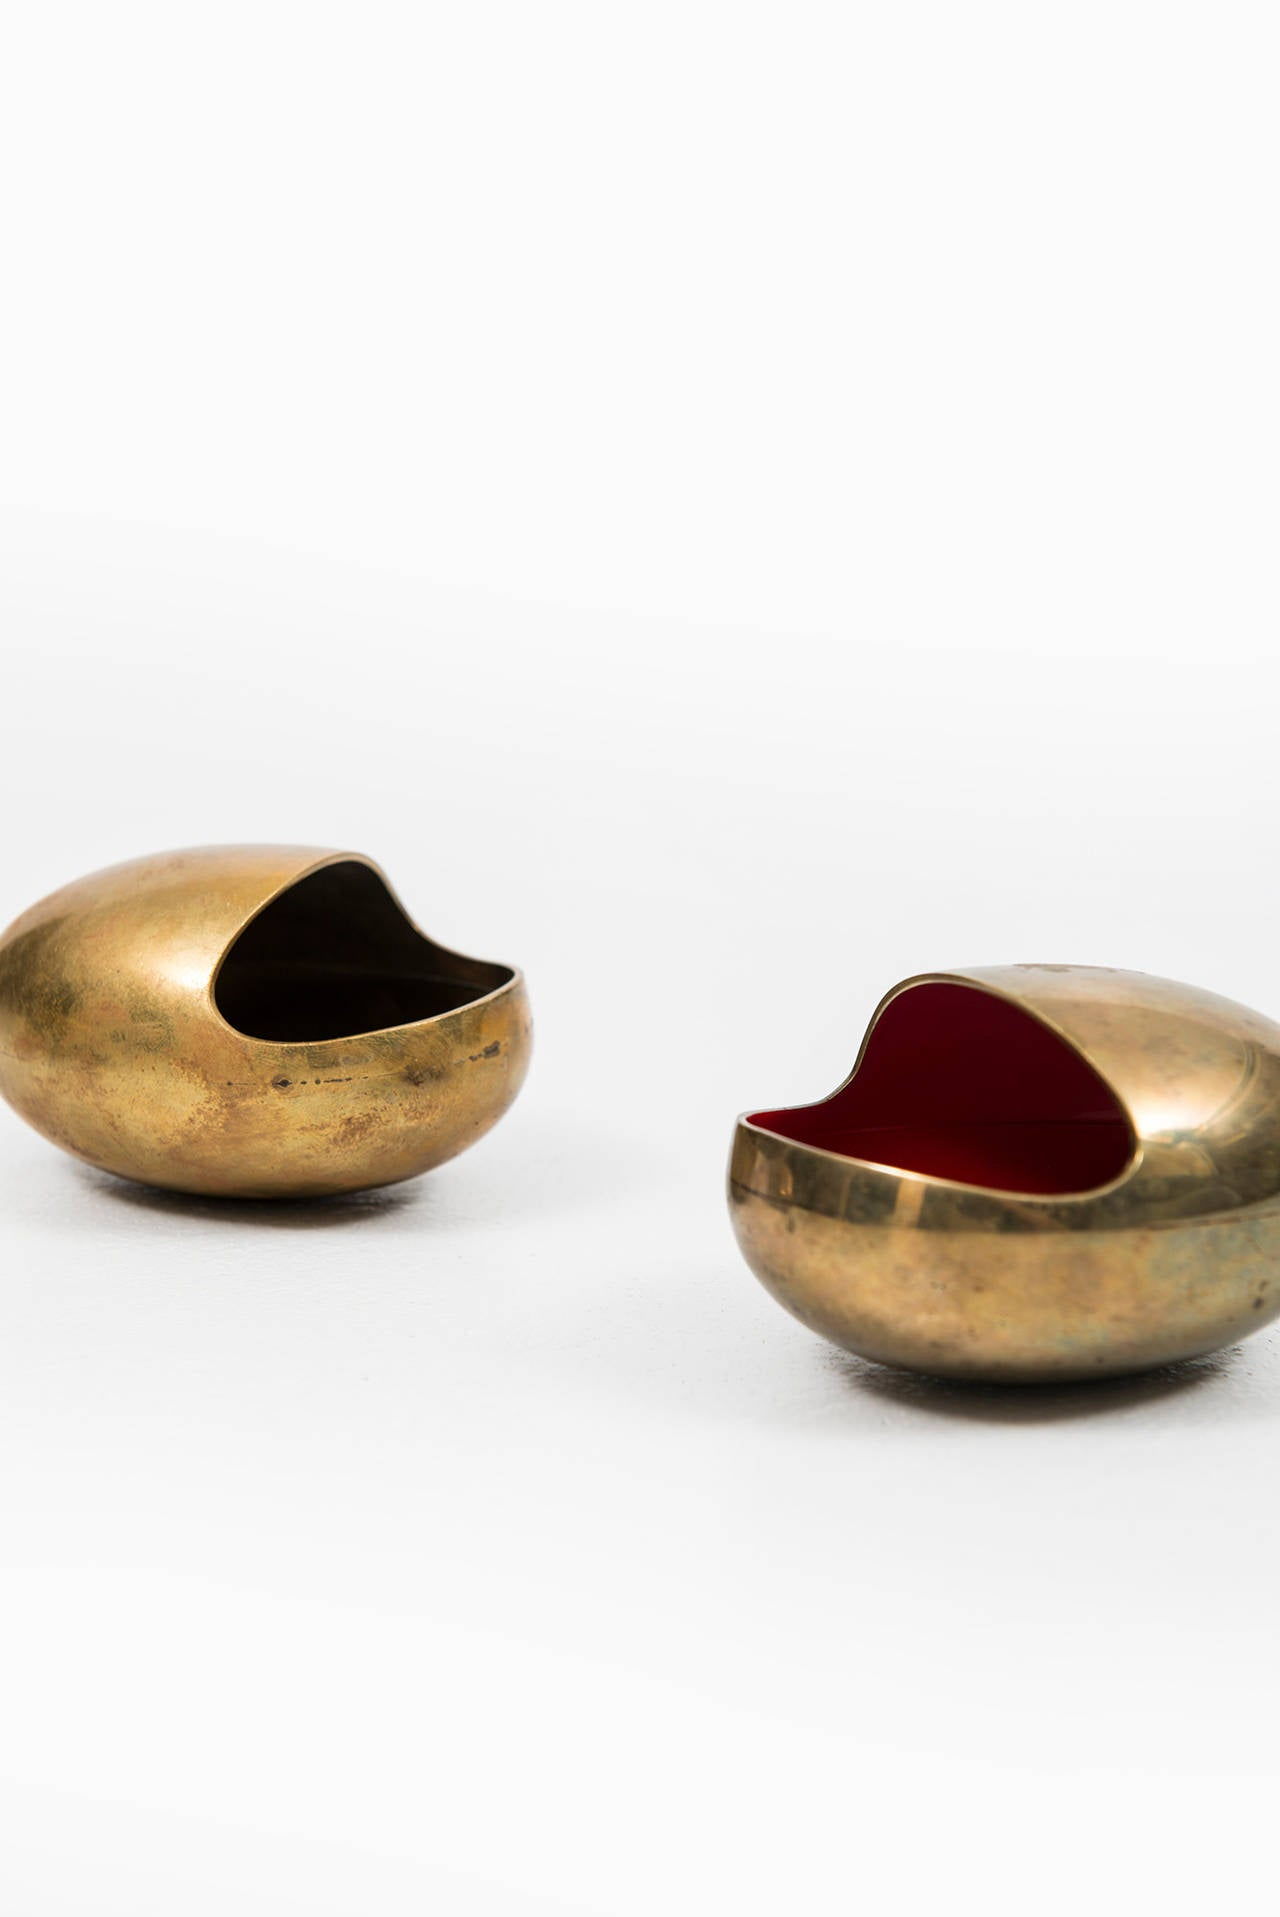 Set Of Two Ashtrays And Cigarette Holder In Brass By Cohr